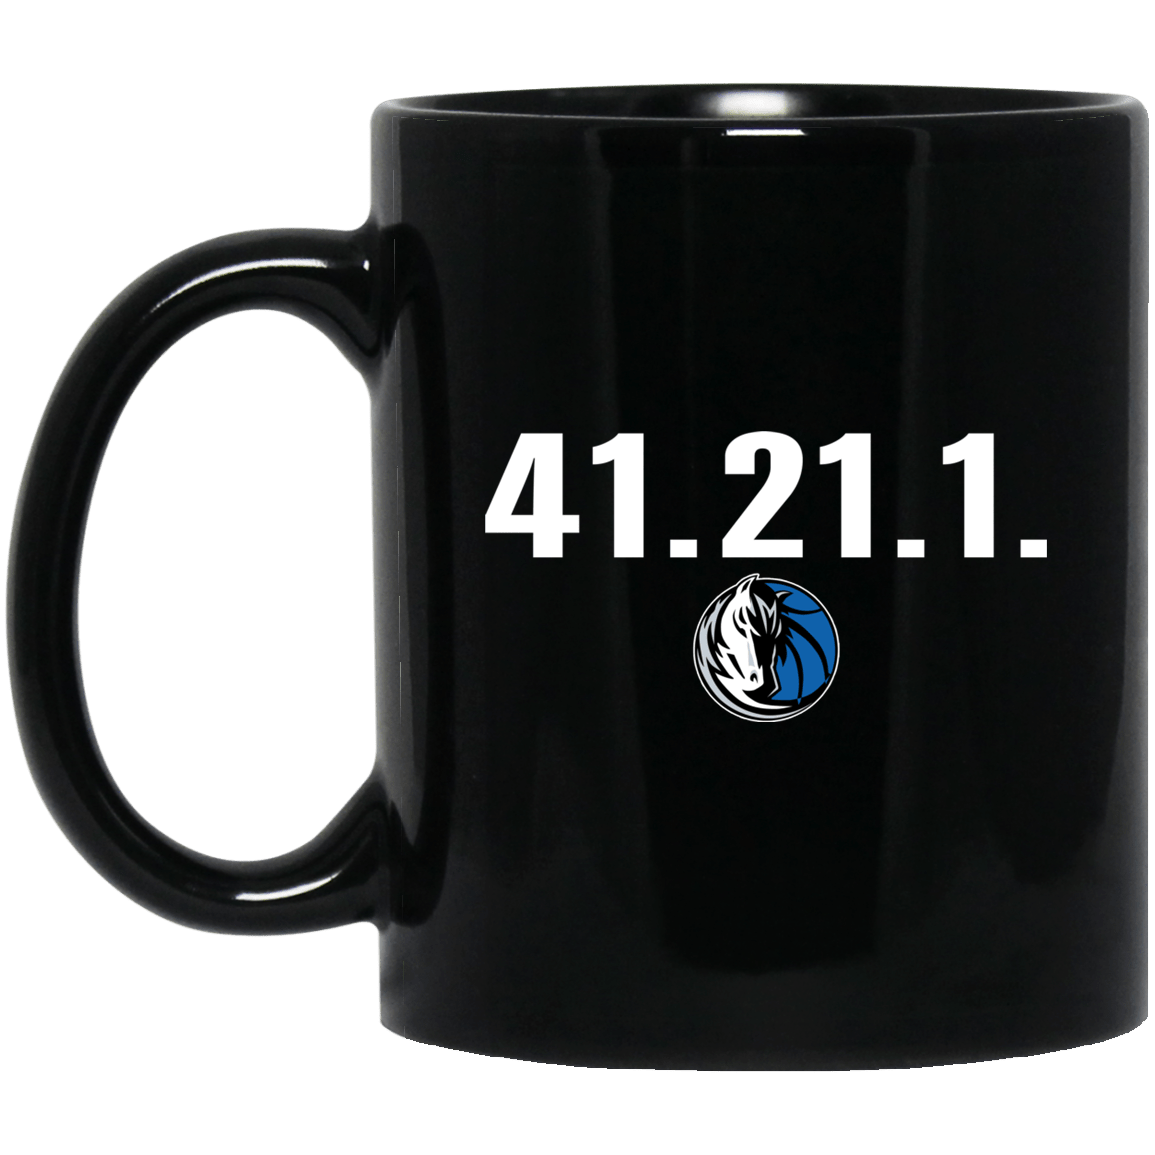 41.21.1 Dallas Mavericks Mug - TEE RIPT